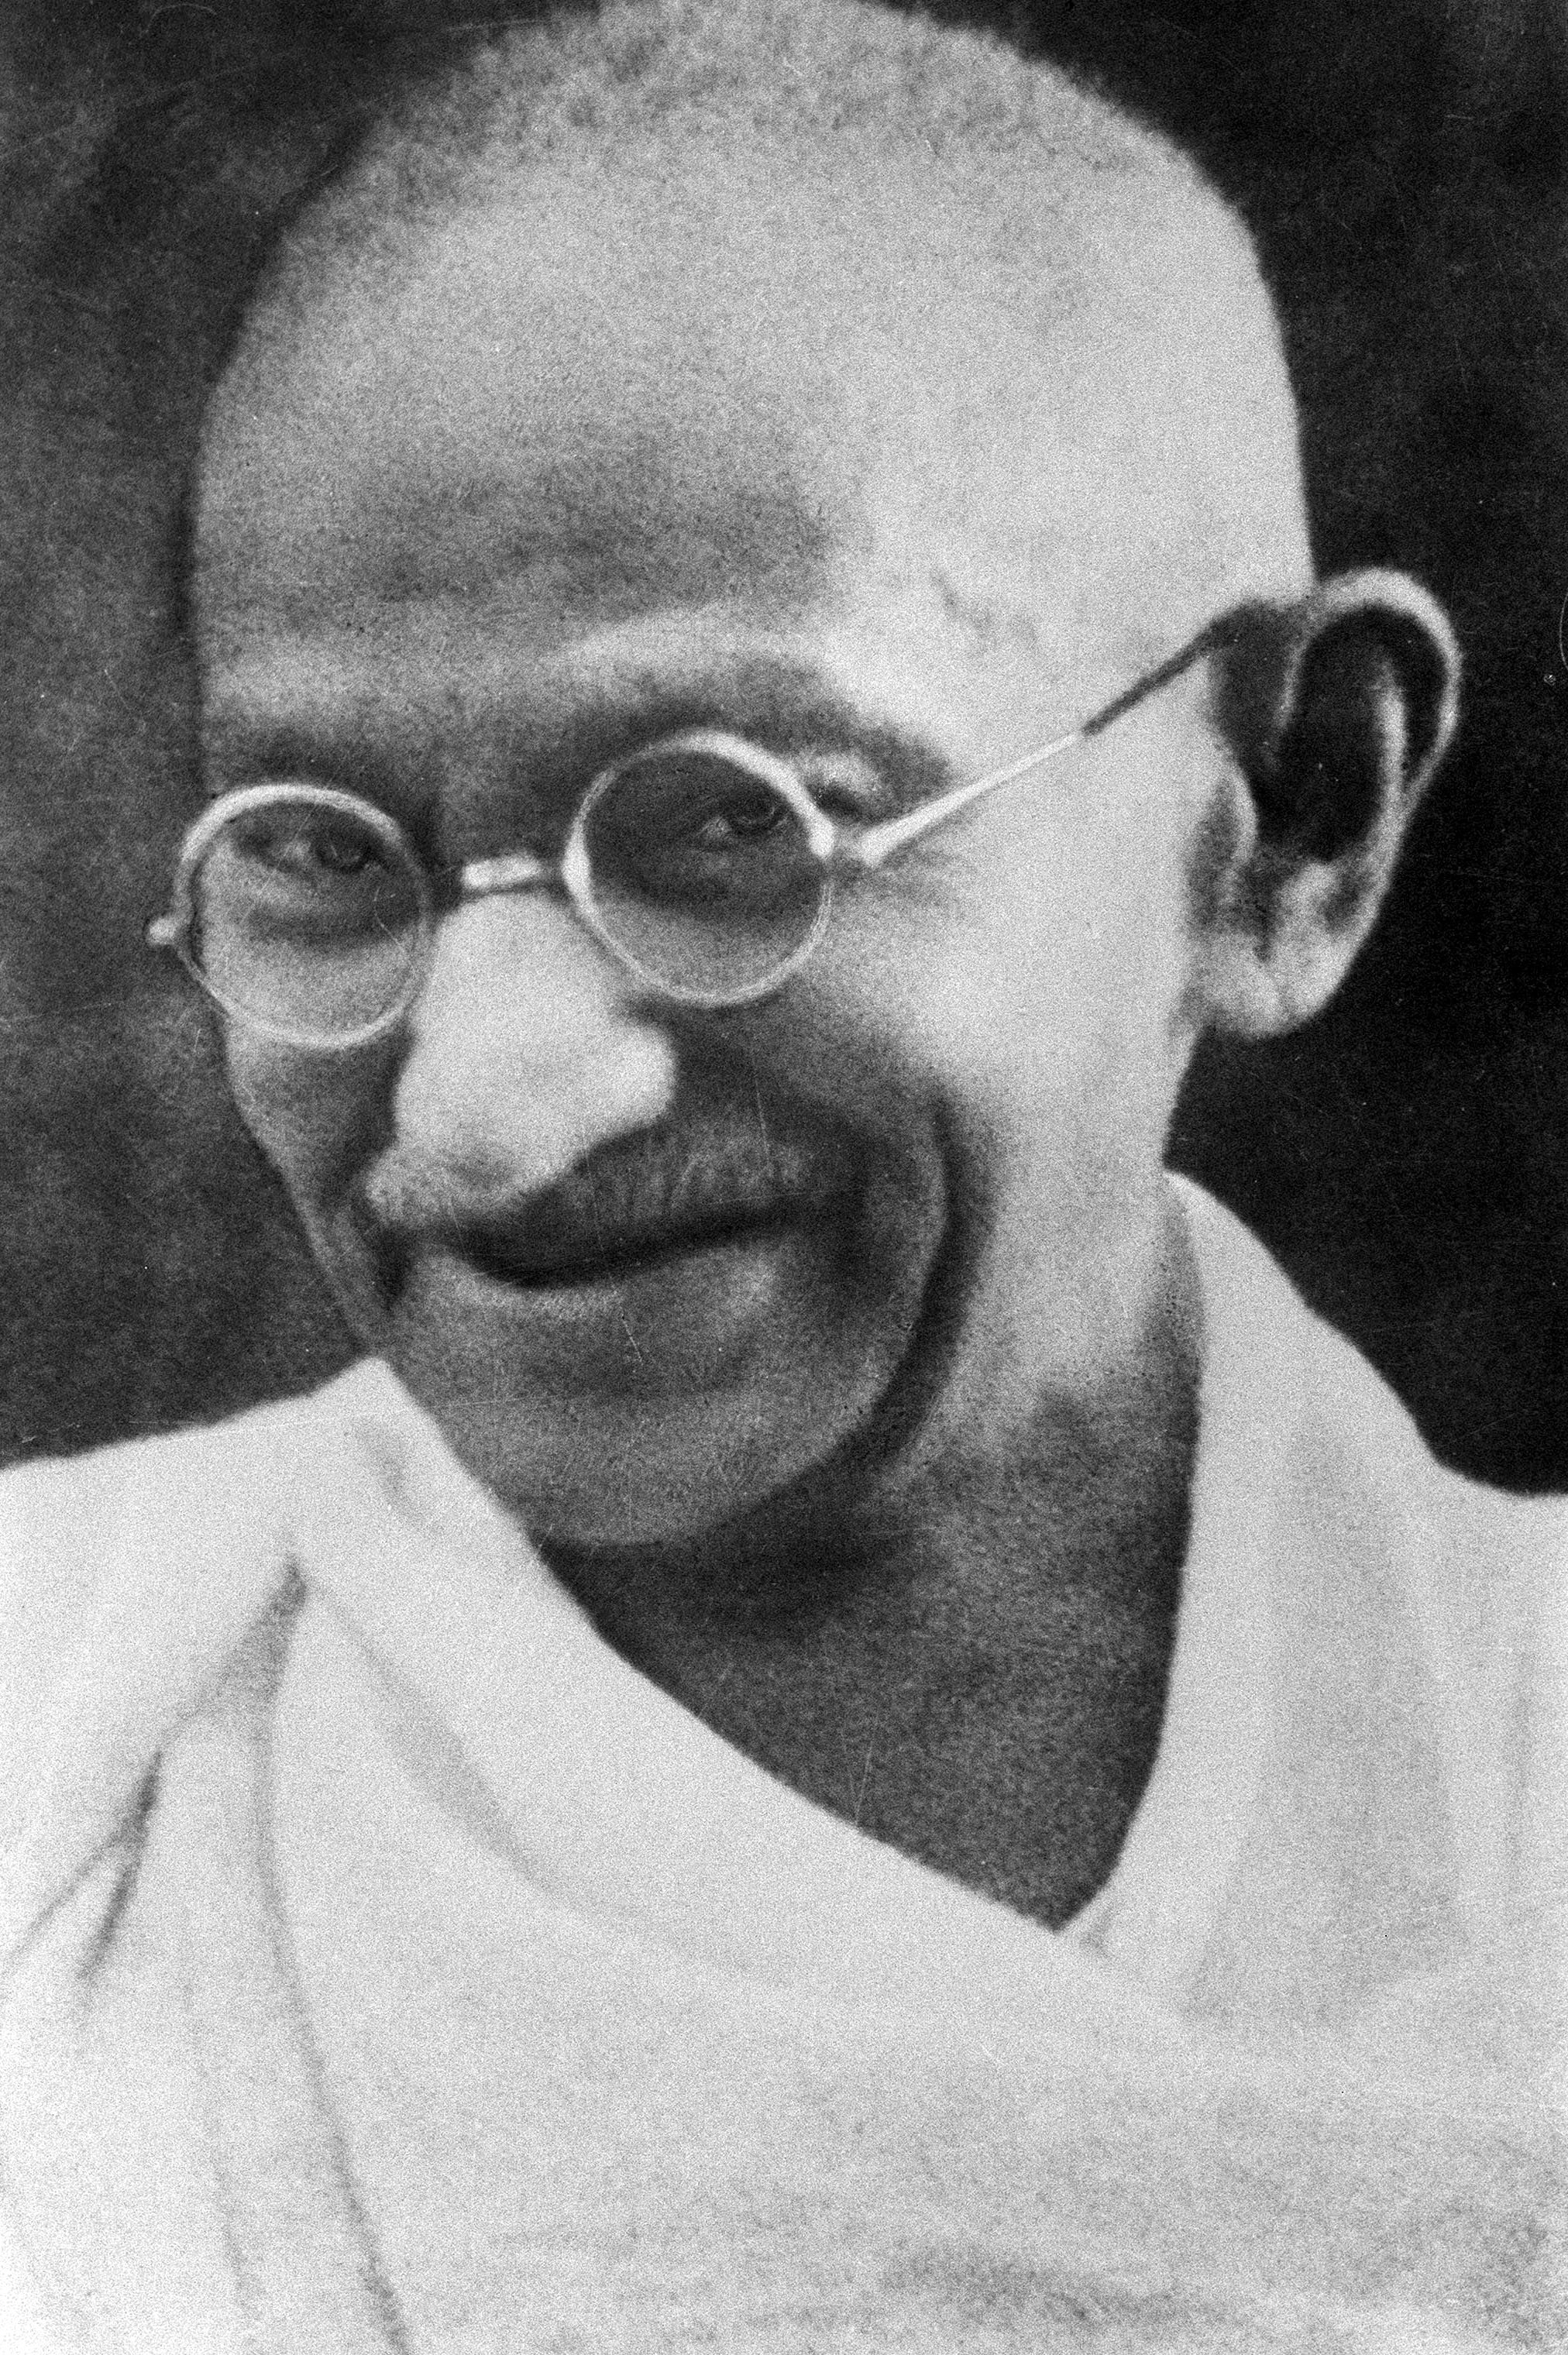 Mahatma Gandhi - Wikipedia, the free encyclopedia